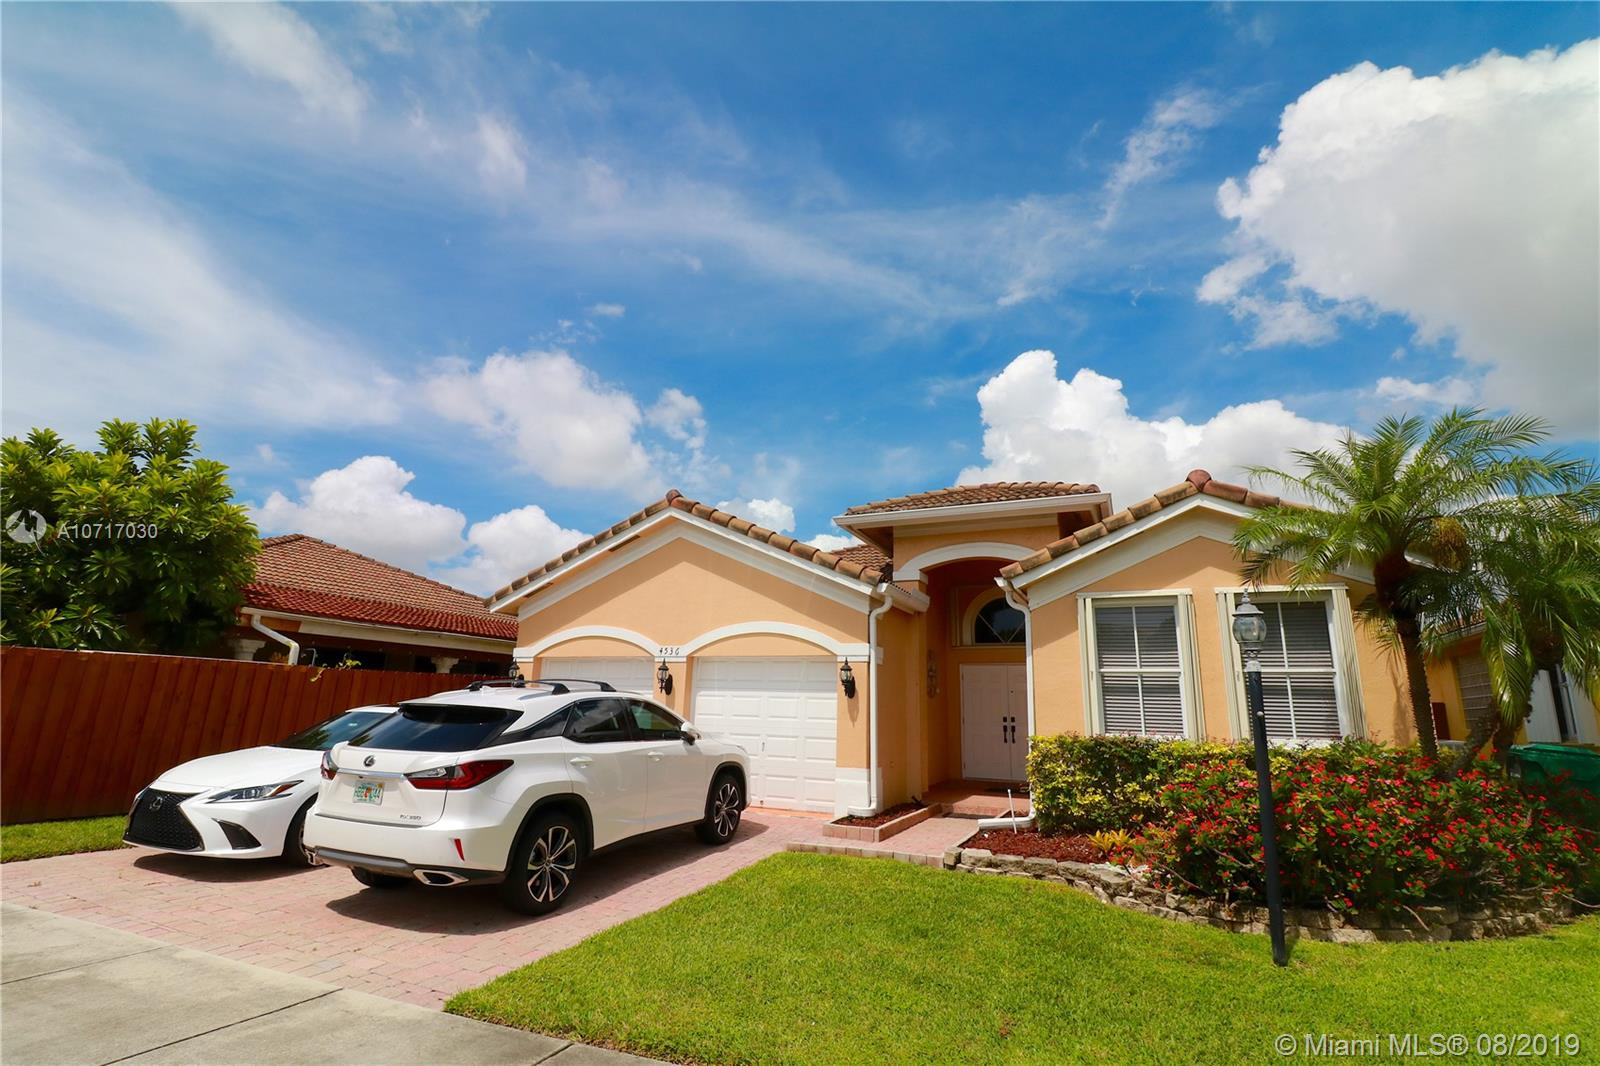 4536 NW 95th Ave, Doral FL 33178